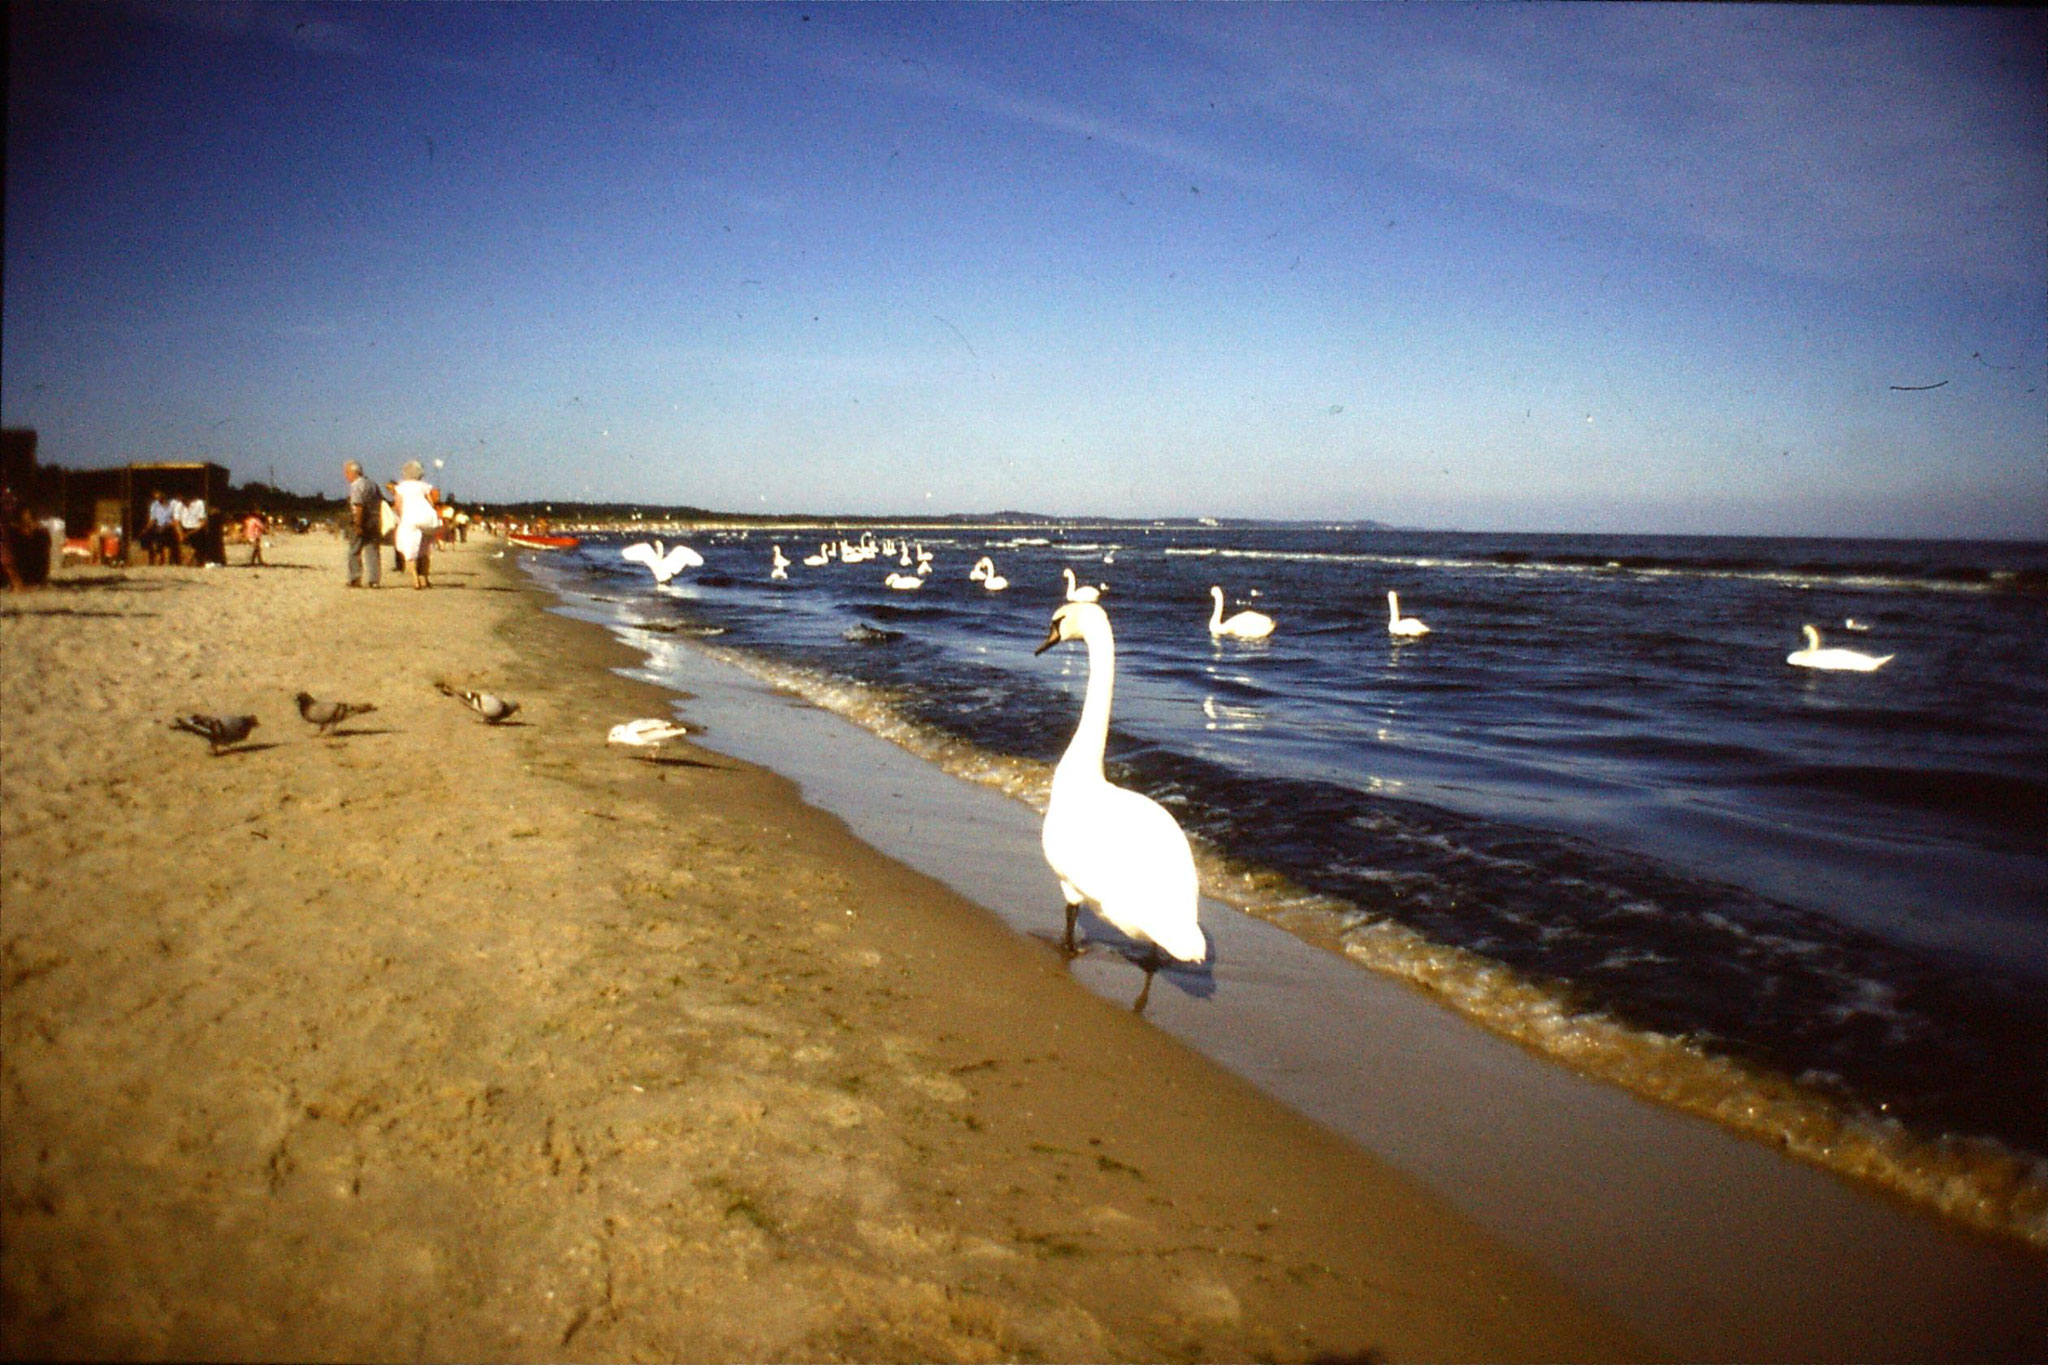 30/8/1988: 12: Swinoujscie, swans on beach